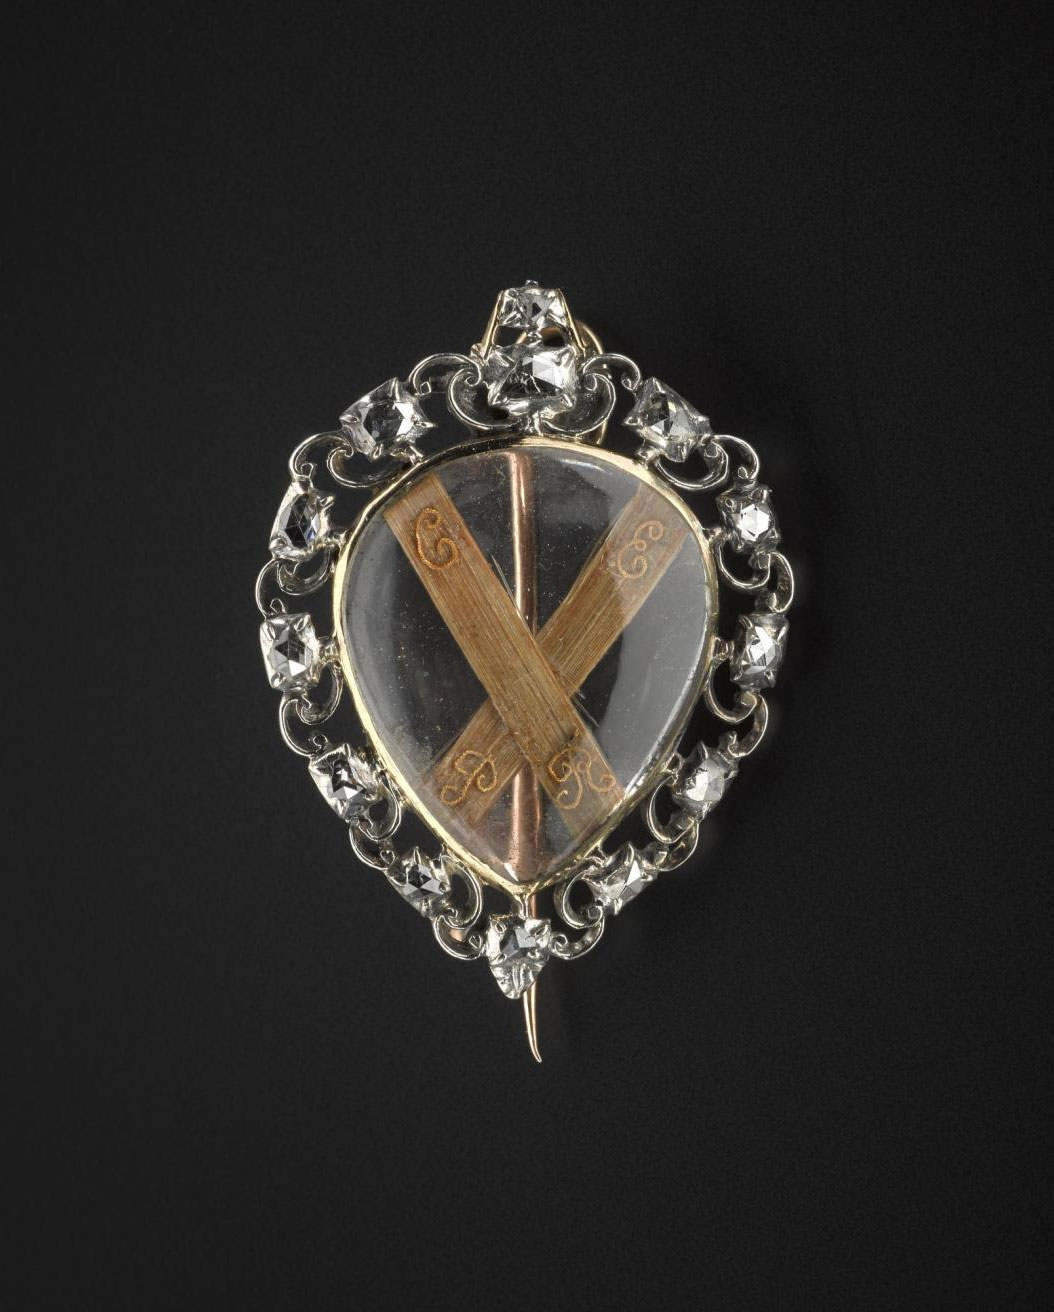 Heart-shaped brooch said to contain the hair of Prince Charles Edward Stuart and given to him by Lady Mary Clark. The hair forms the shape of a saltire with wire lettering 'C.E.P.R'.